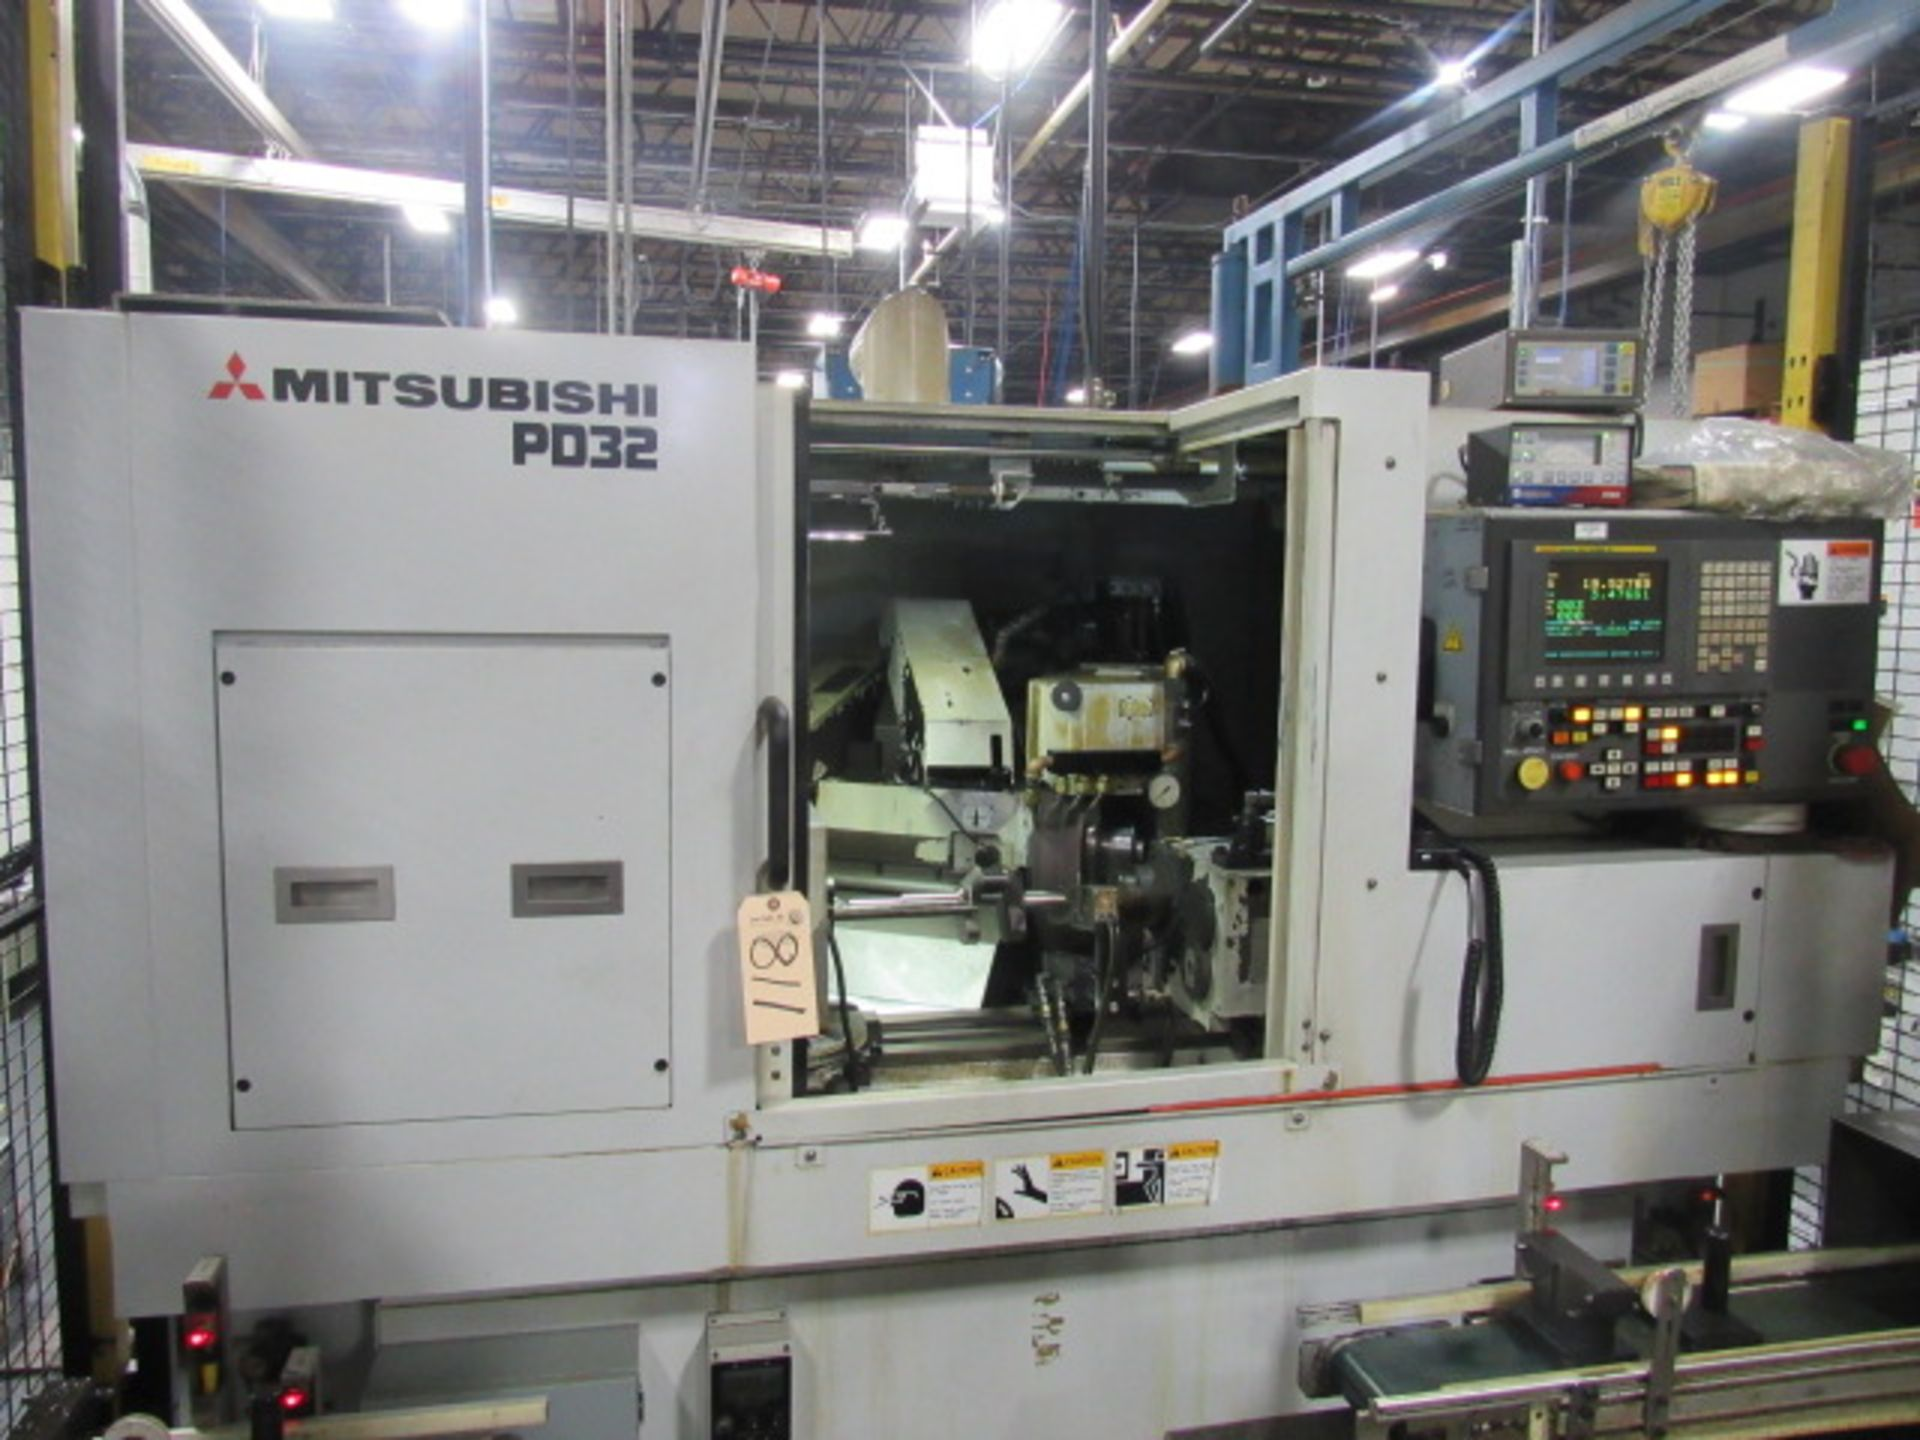 MITSUBISHI PD32-50A CNC ANGLEHEAD CYLINDRICAL GRINDER, NEW 2013, Fanuc Series 32i-B CNC Control, Rotary Dresser, SBS Auto Wheel Balancing, In-Process Sizing Gauge, Lateral Locating (Shoulder Gauge)